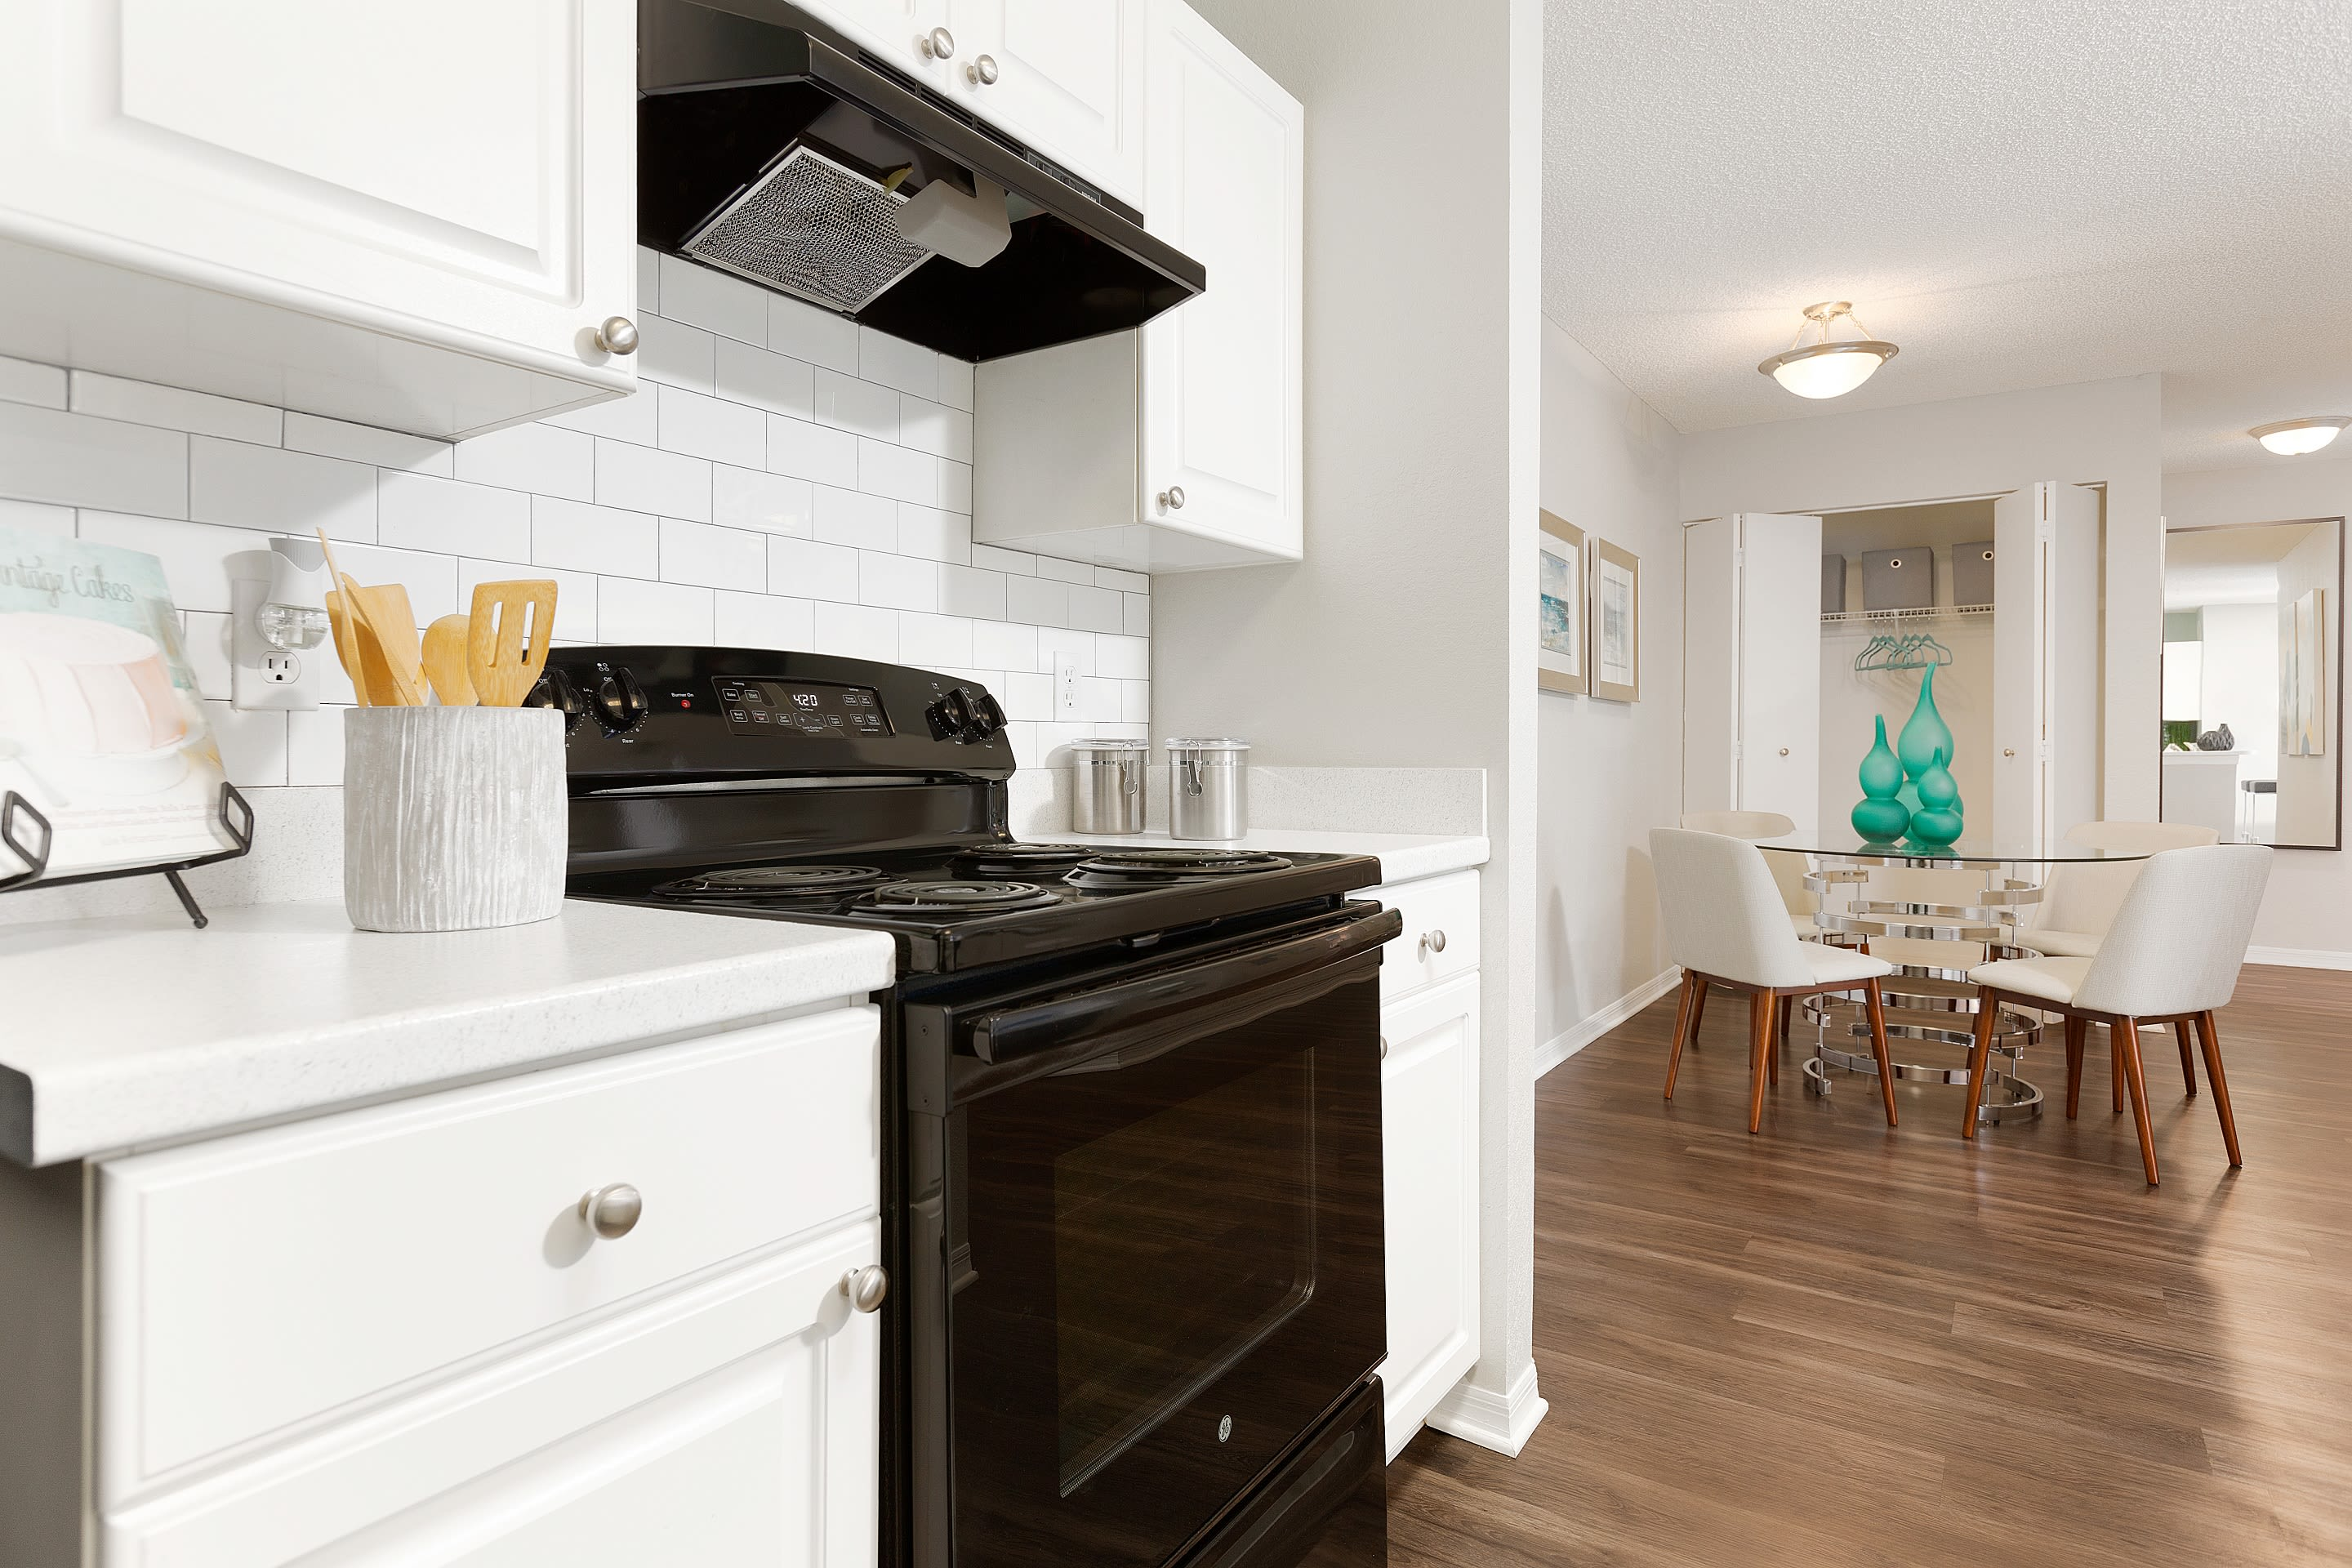 newly renovated kitchens at The Avenue in Ocoee